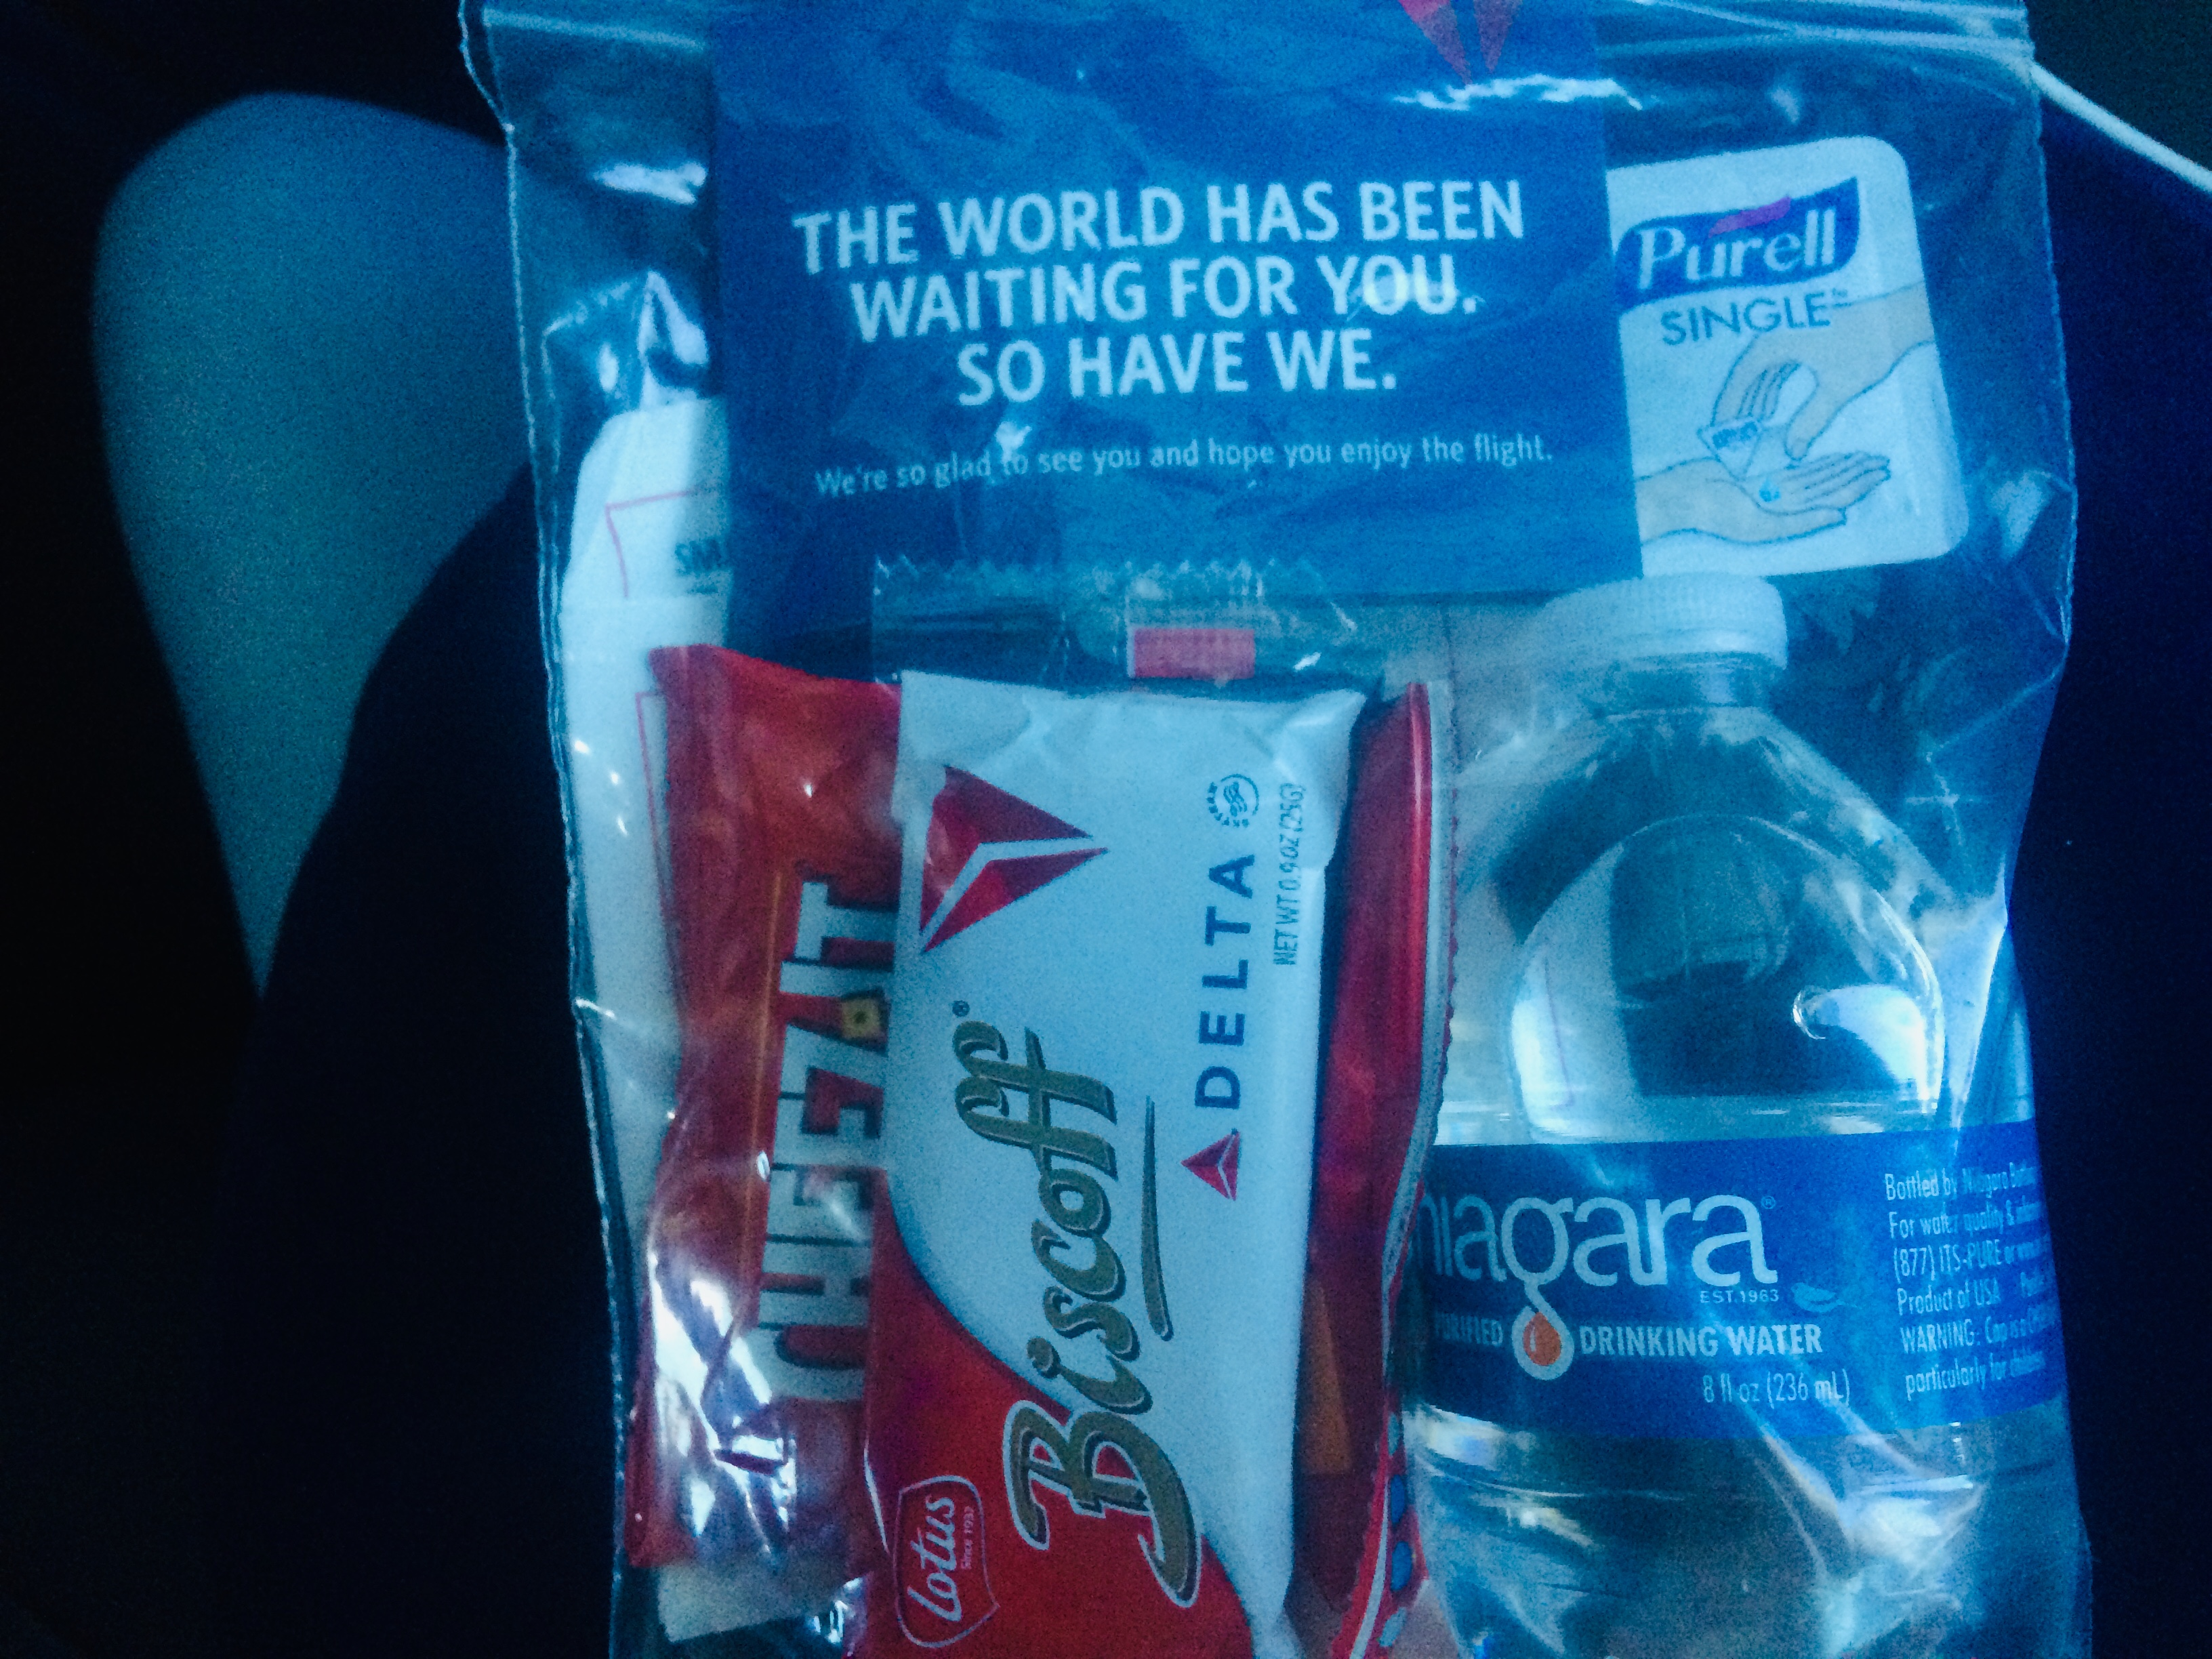 Delta Airlines provides packages snacks in plastic bags and provides hand sanitizer to slow the spread of germs.